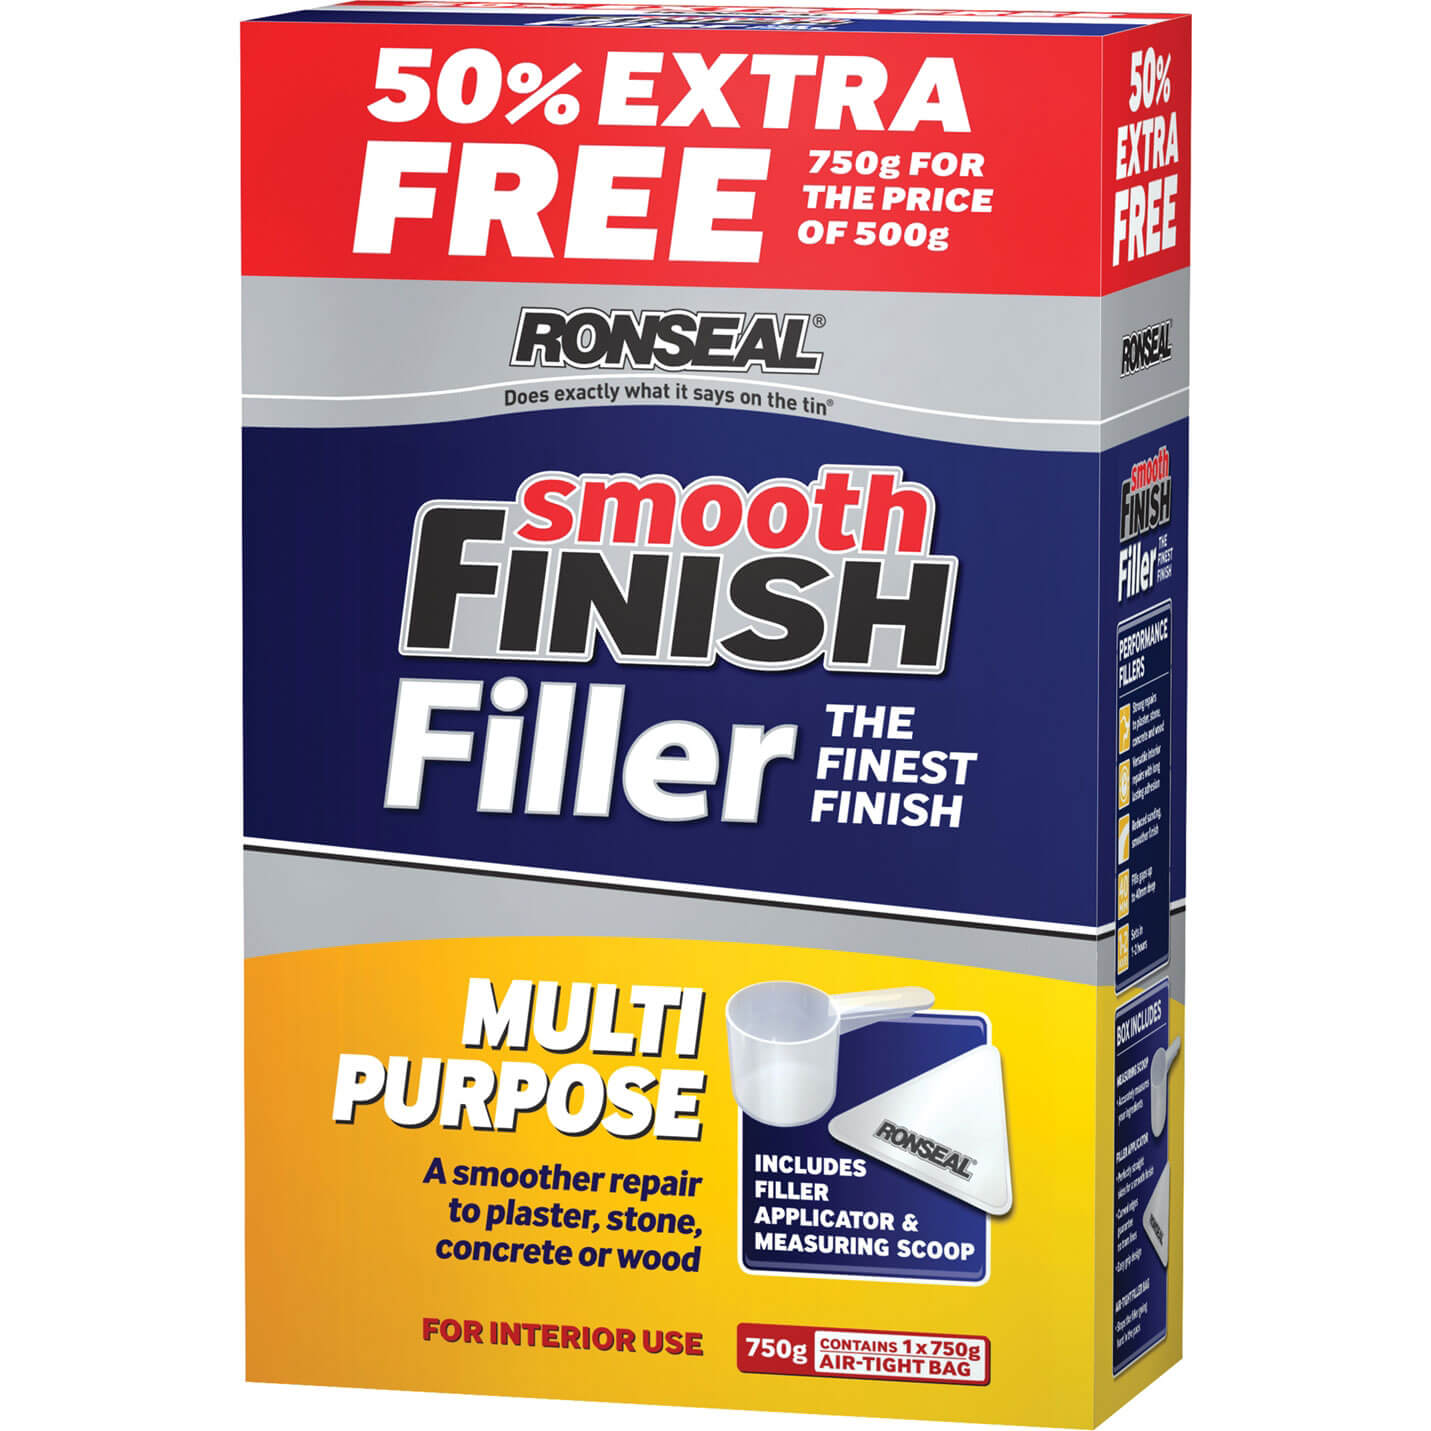 Tooled Up/Sealants & Adhesives/Fillers/Ronseal Smooth Finish Multi Purpose Interior Wall Powder Filler 500g + 50% Extra